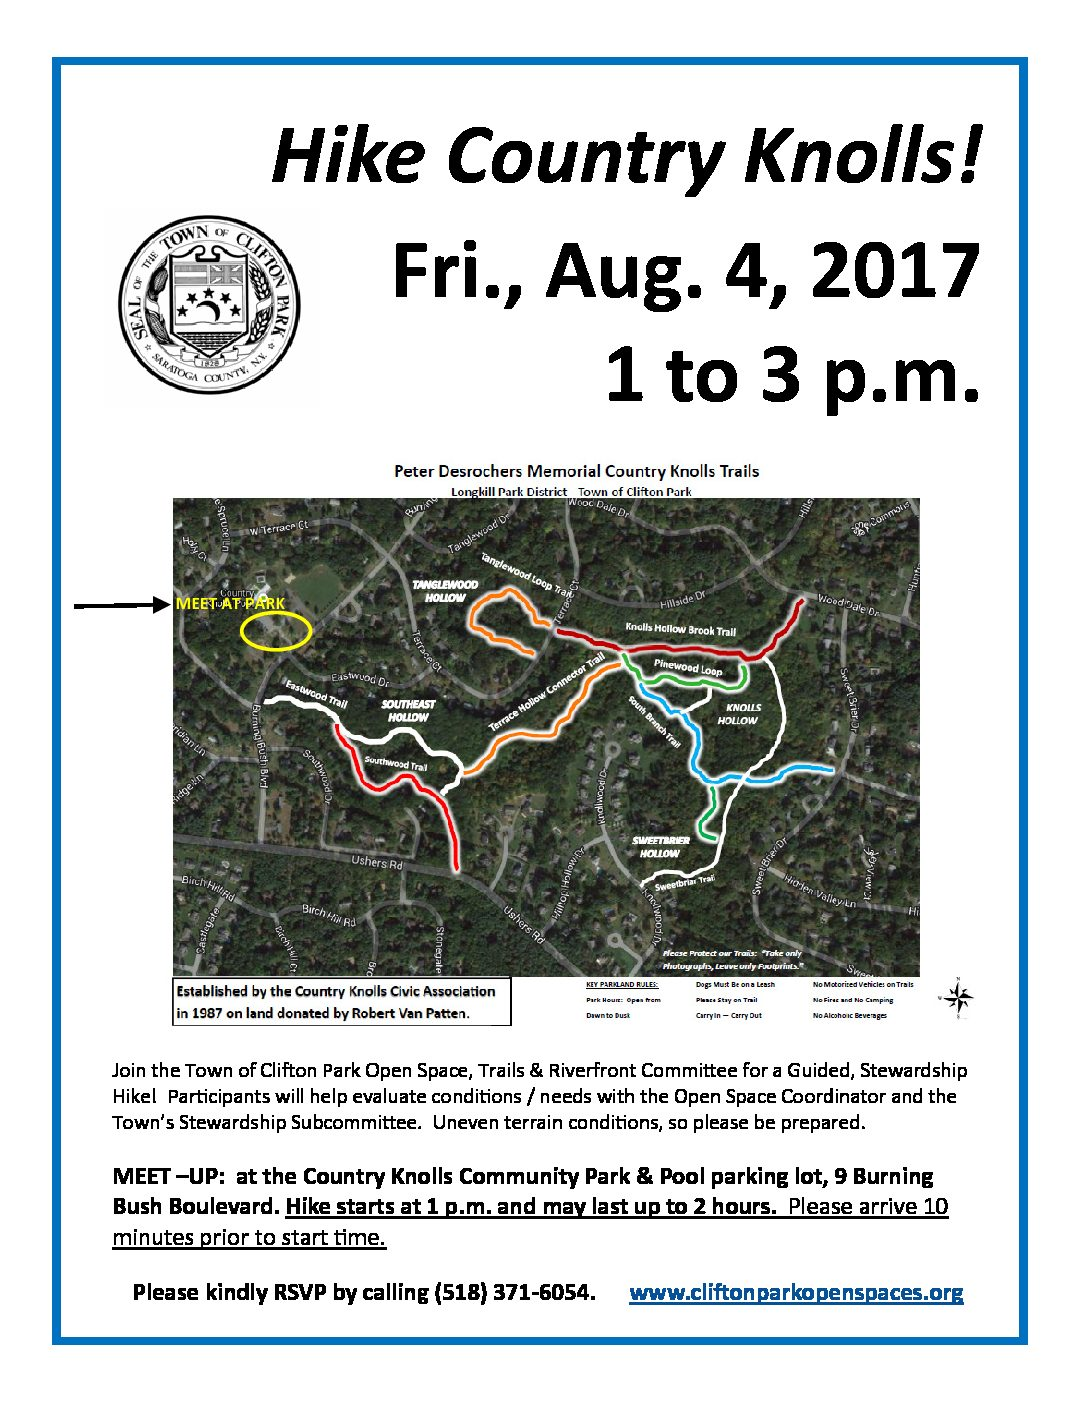 Explore Country Knolls Trails on Aug. 4!